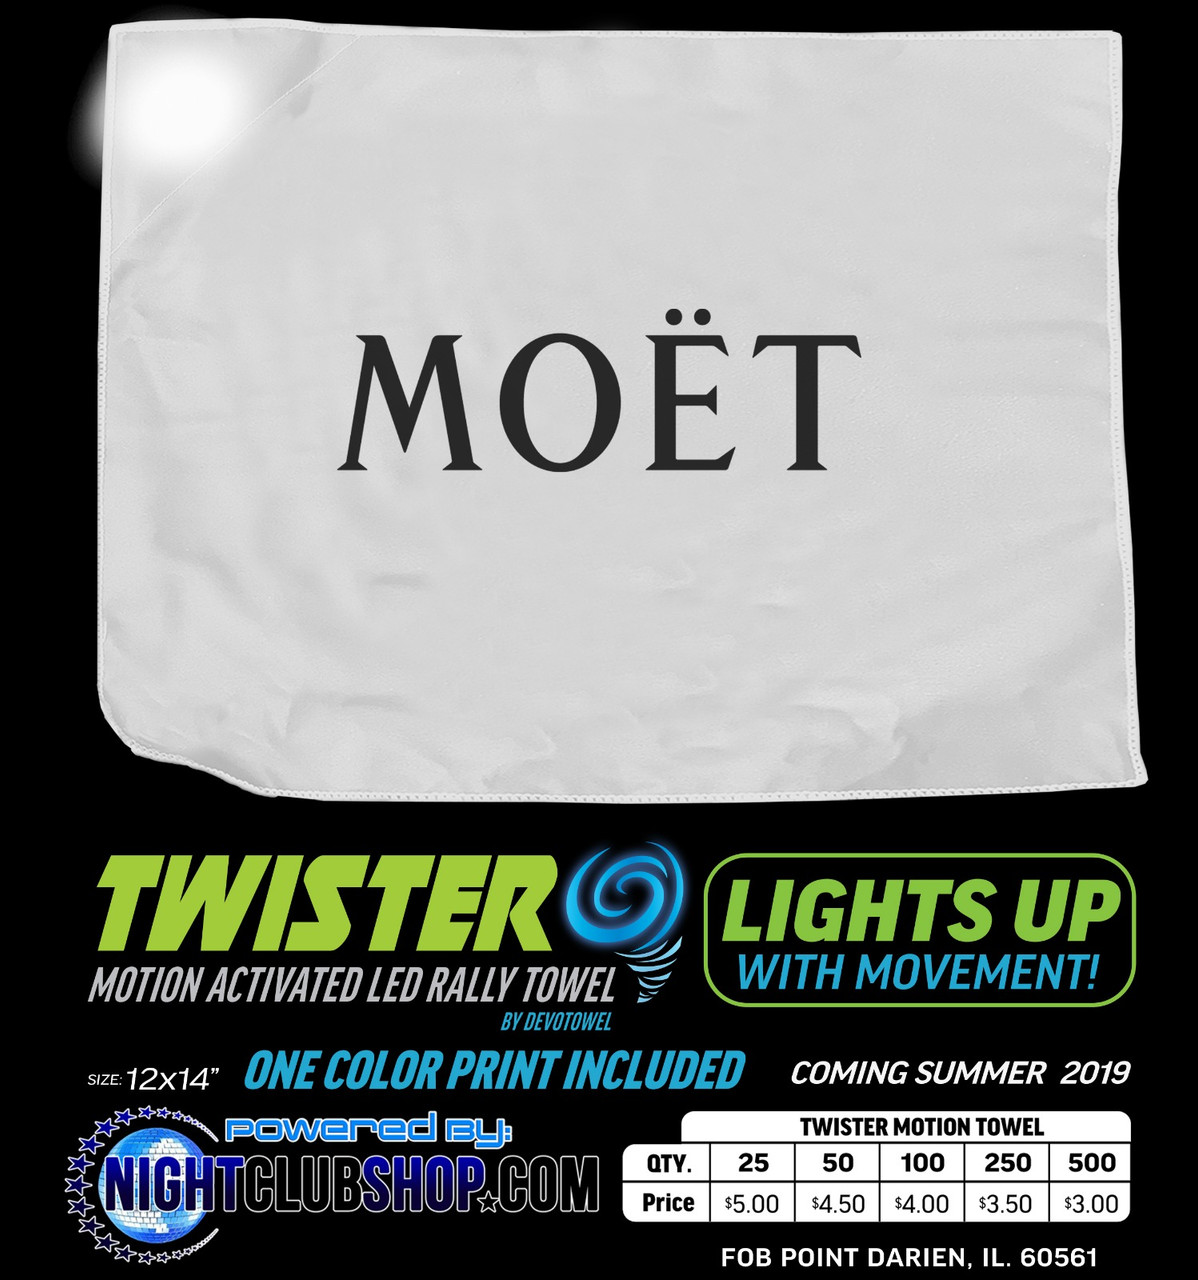 Motion, Activated, LED, Bottle, Service, Promo, Towel, rally, vip, led